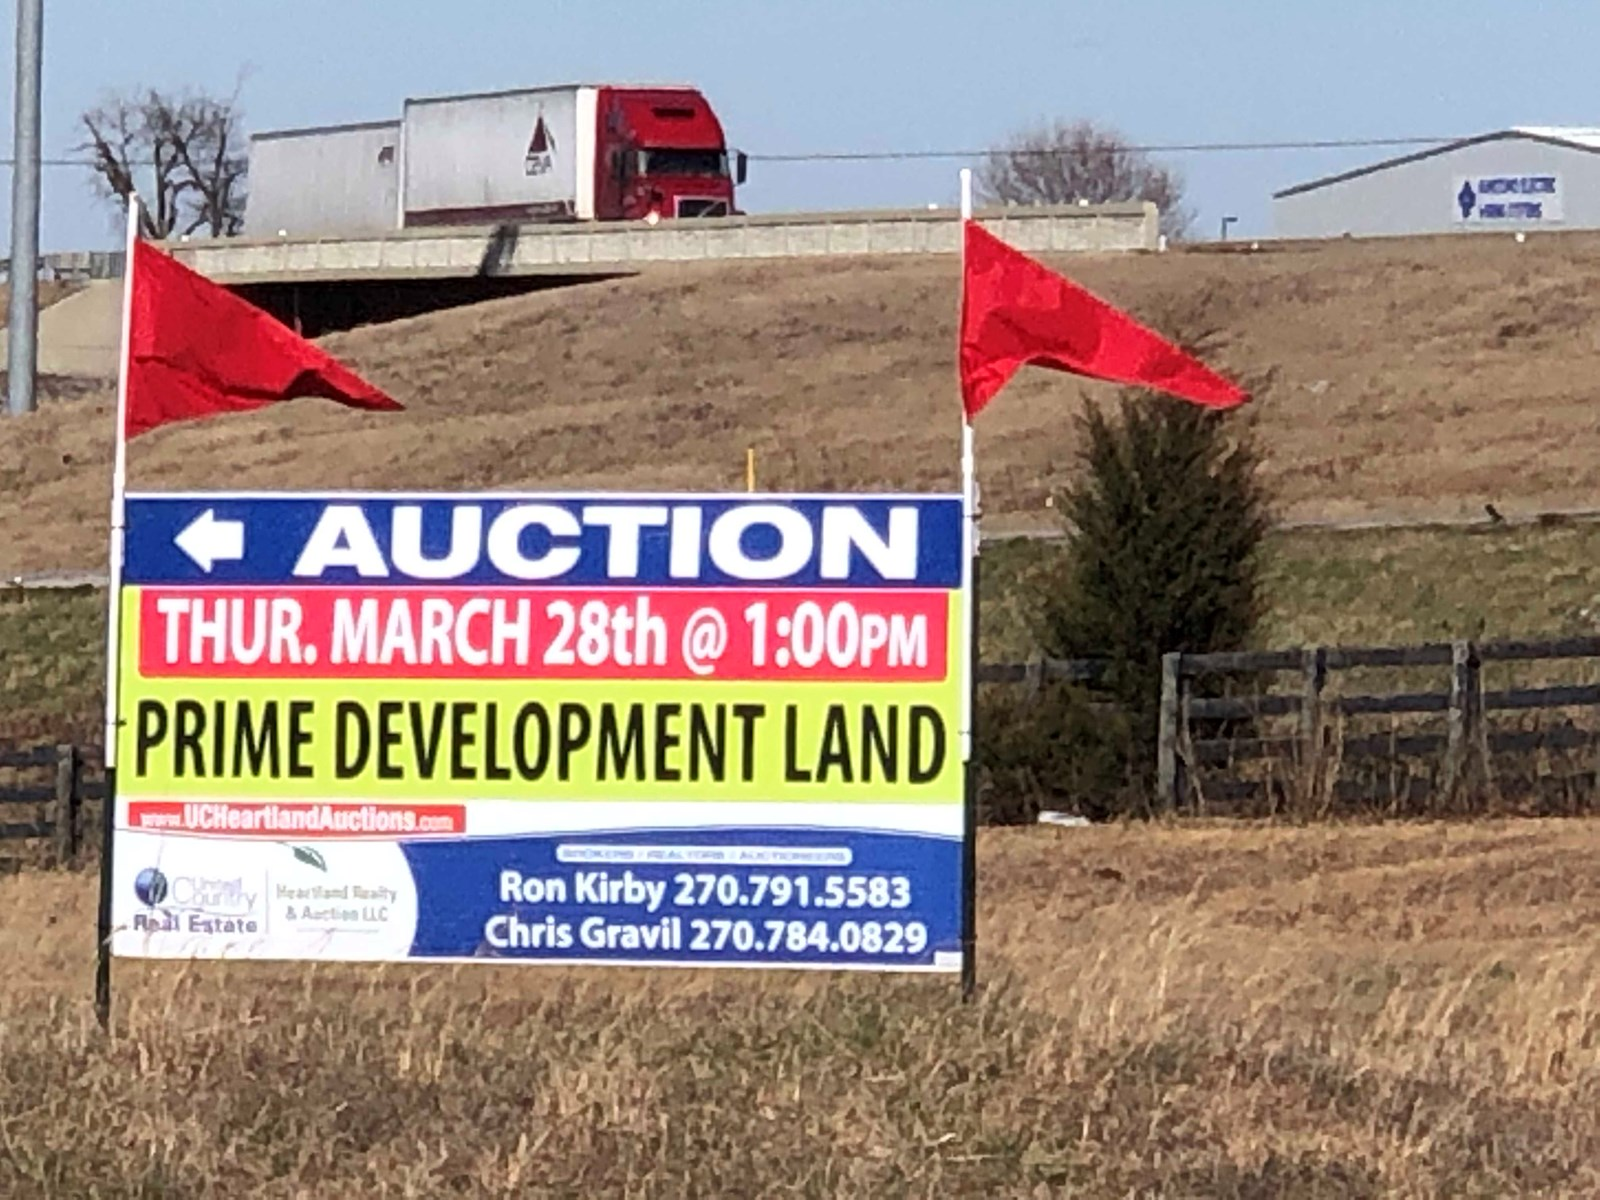 Development Land Auction